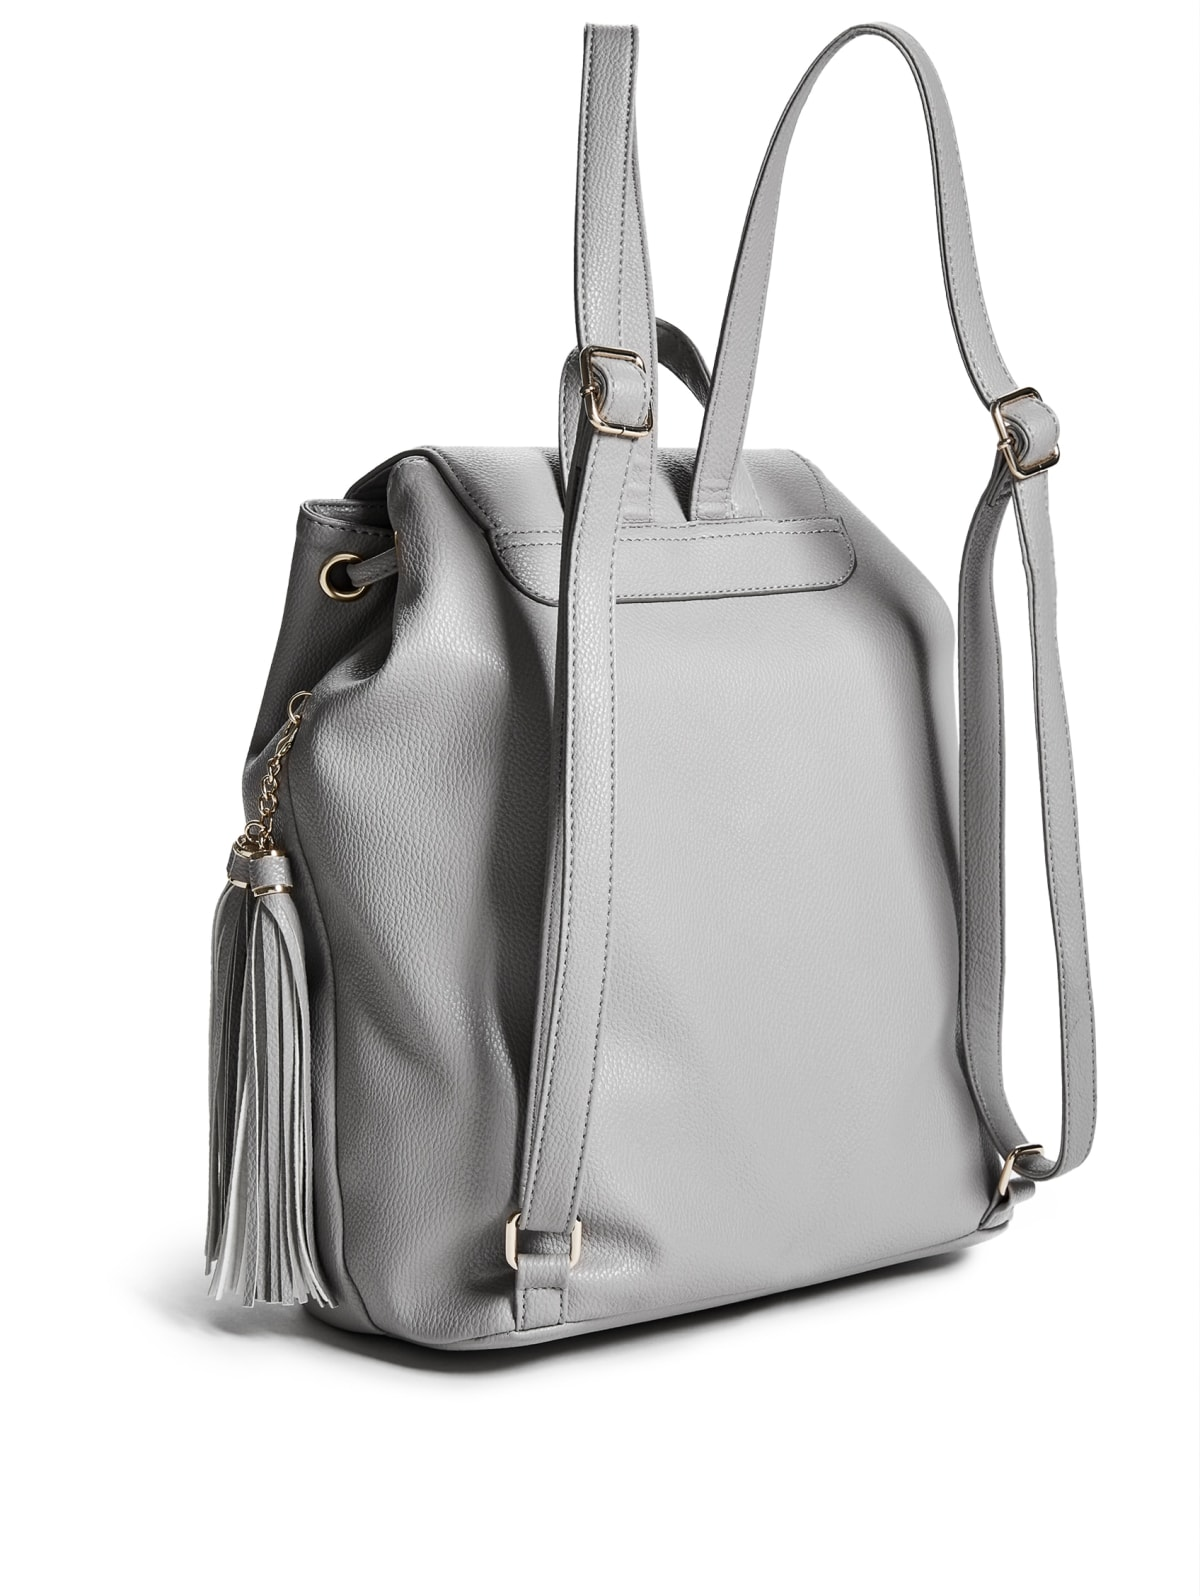 GUESS Factory Womens Remy Backpack | Guess handbags, Guess